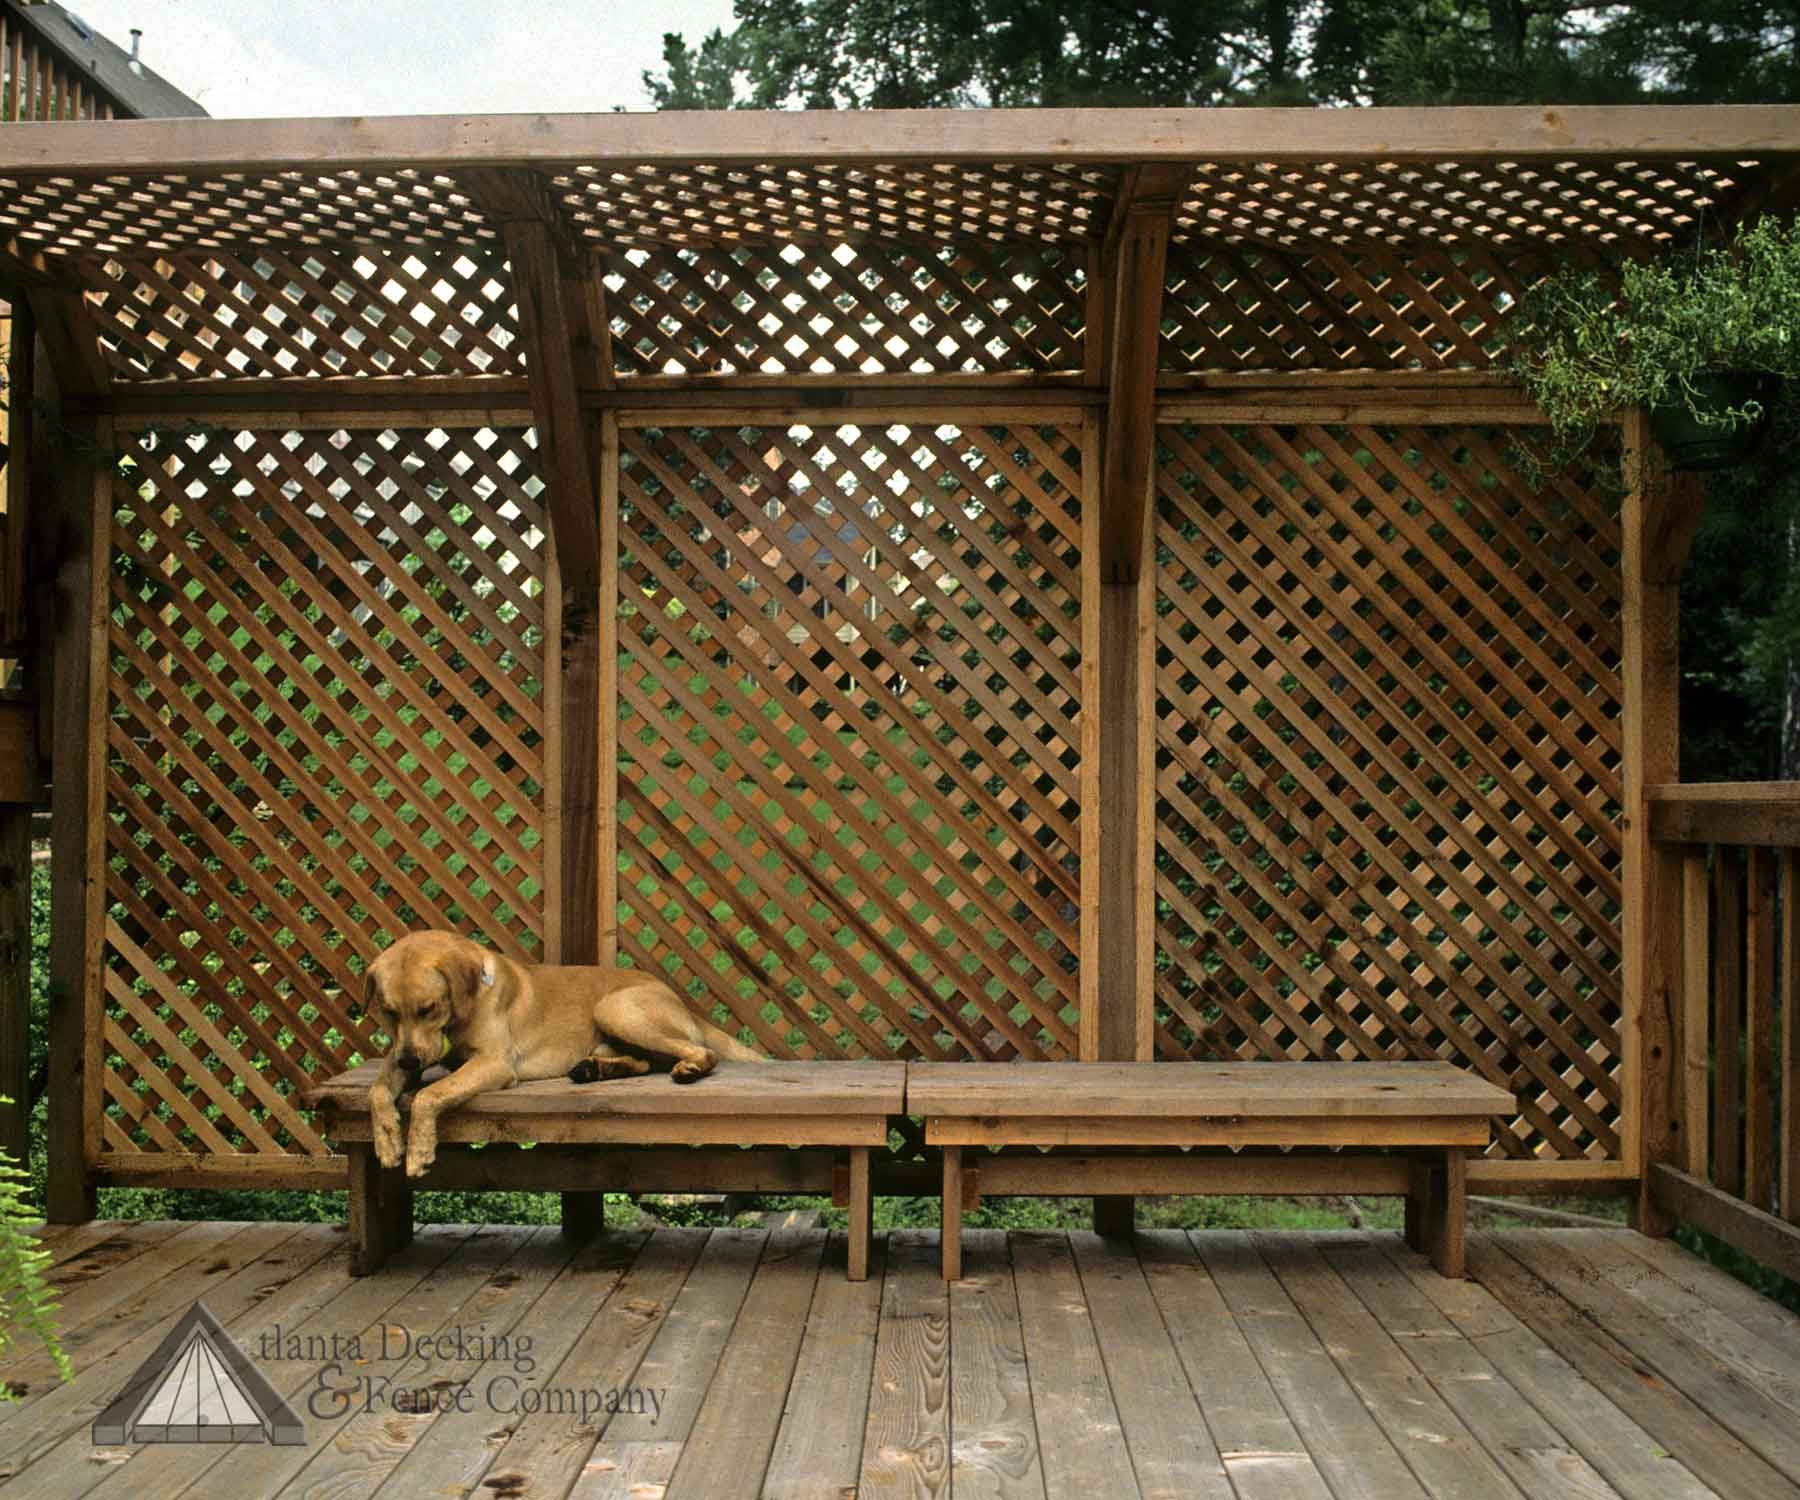 Patio Privacy Fence Picture Of Deck Privacy Screen For Back Patio Nice Neighbor Just